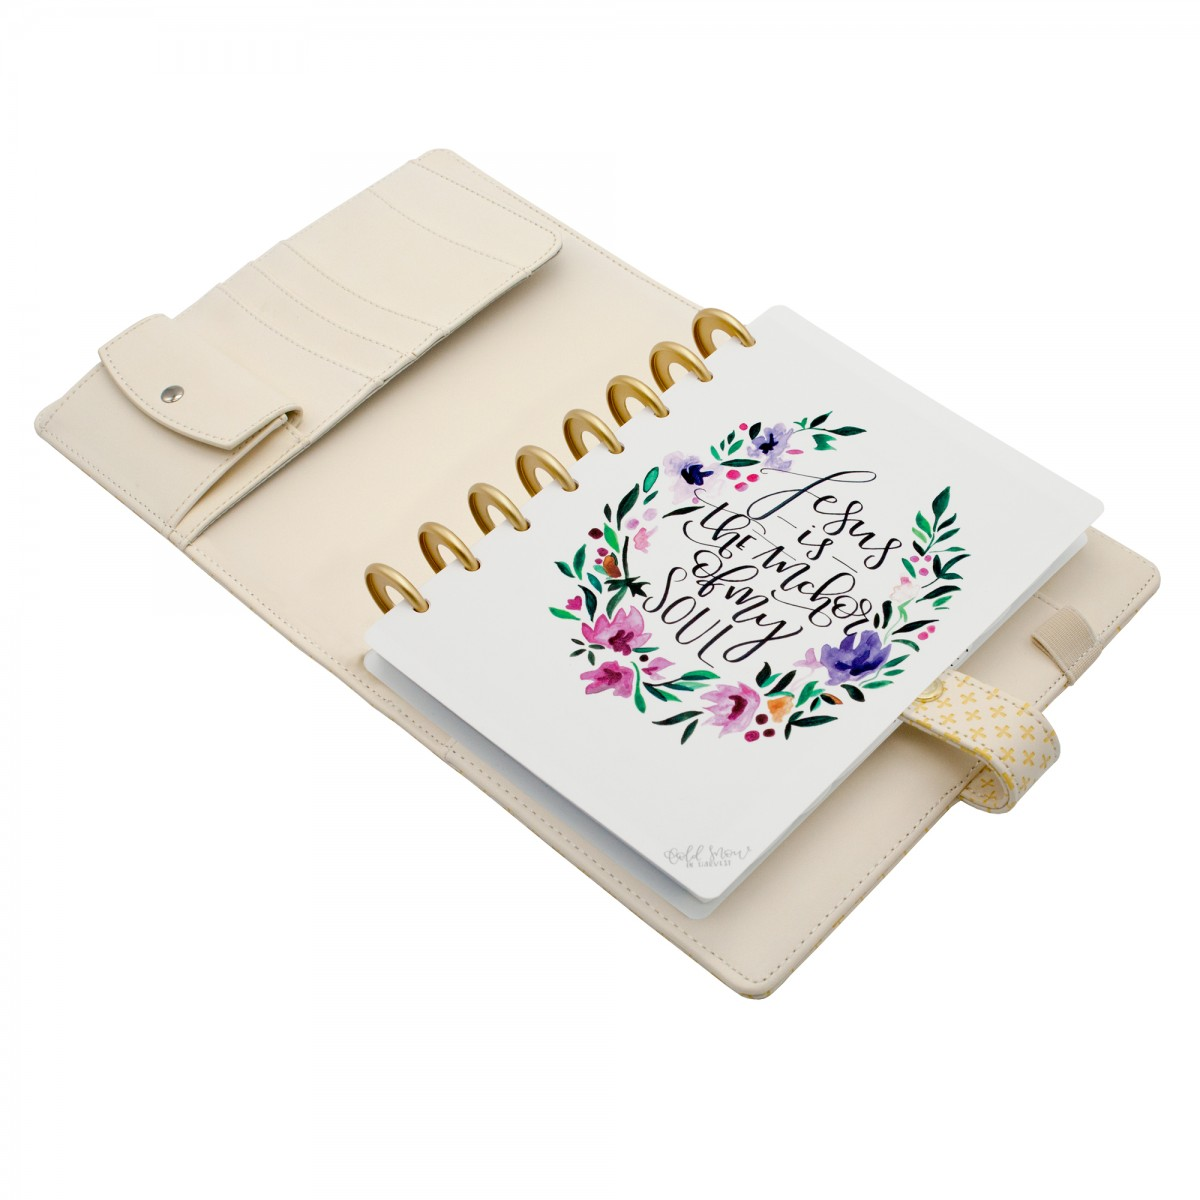 DISCAGENDA BLISS PRAYER JOURNAL A5 DISCBOUND SNAP CLOSURE